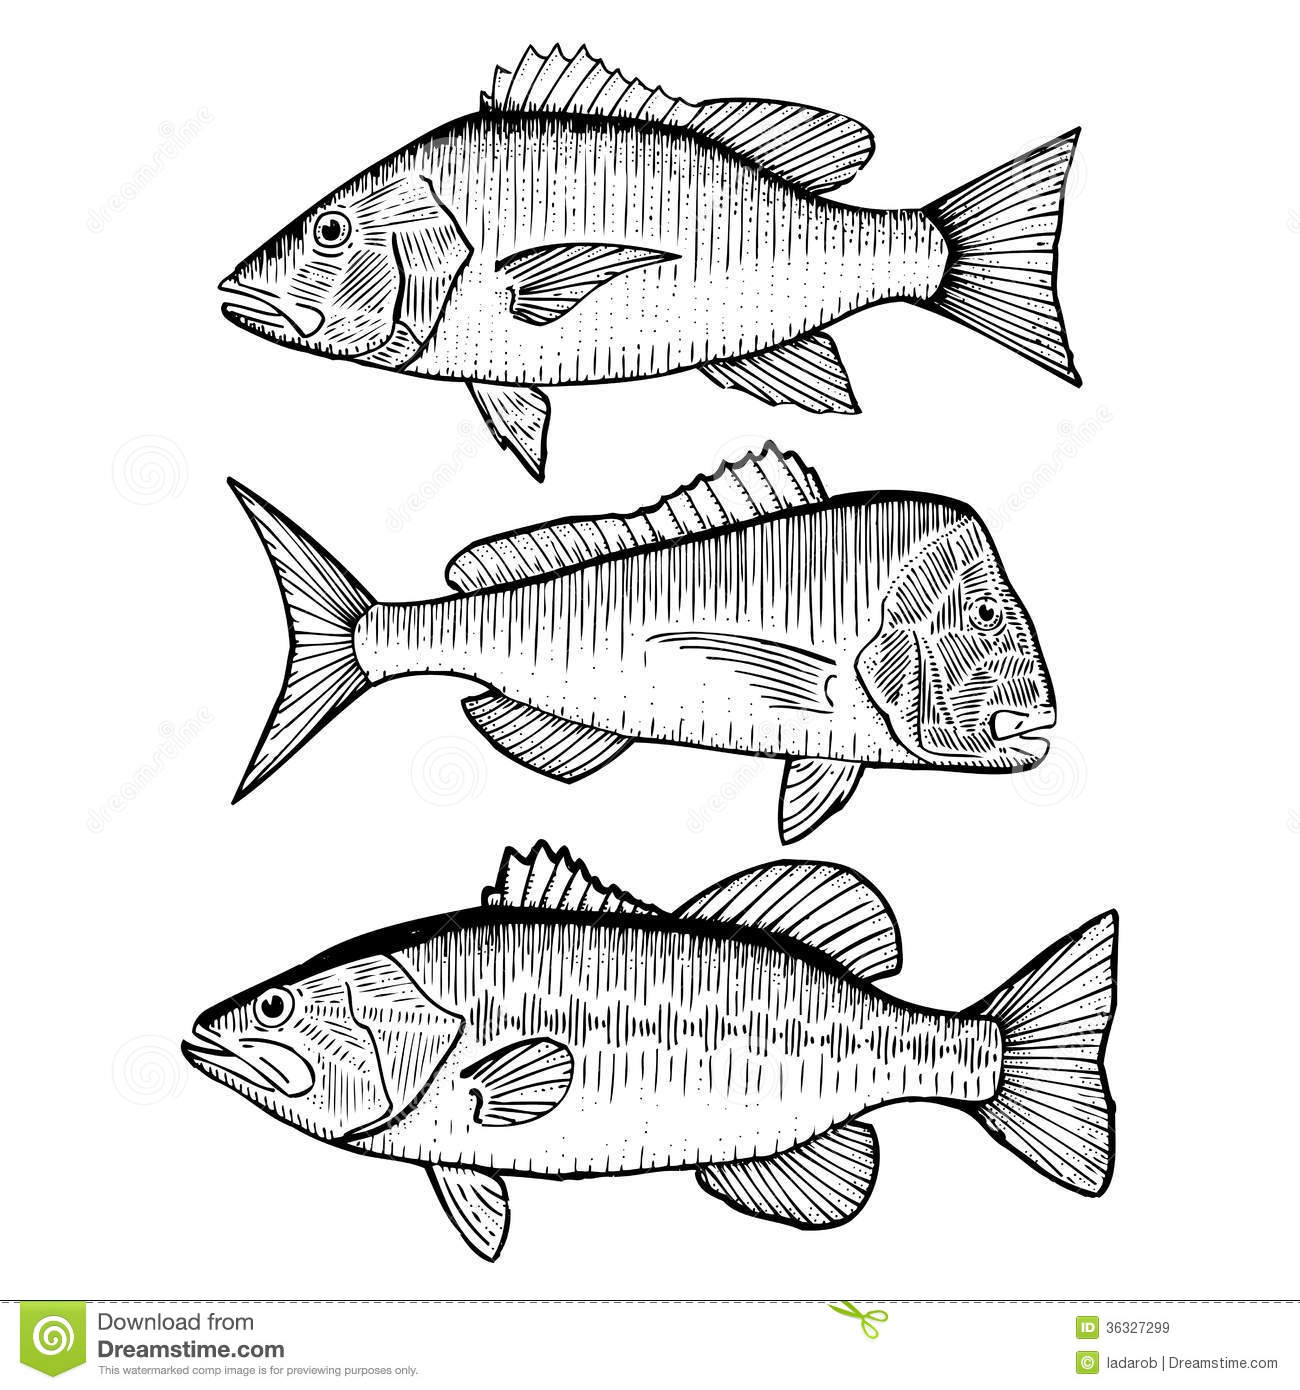 Illustrated stock vector illustration. Bass clipart snapper fish png royalty free download